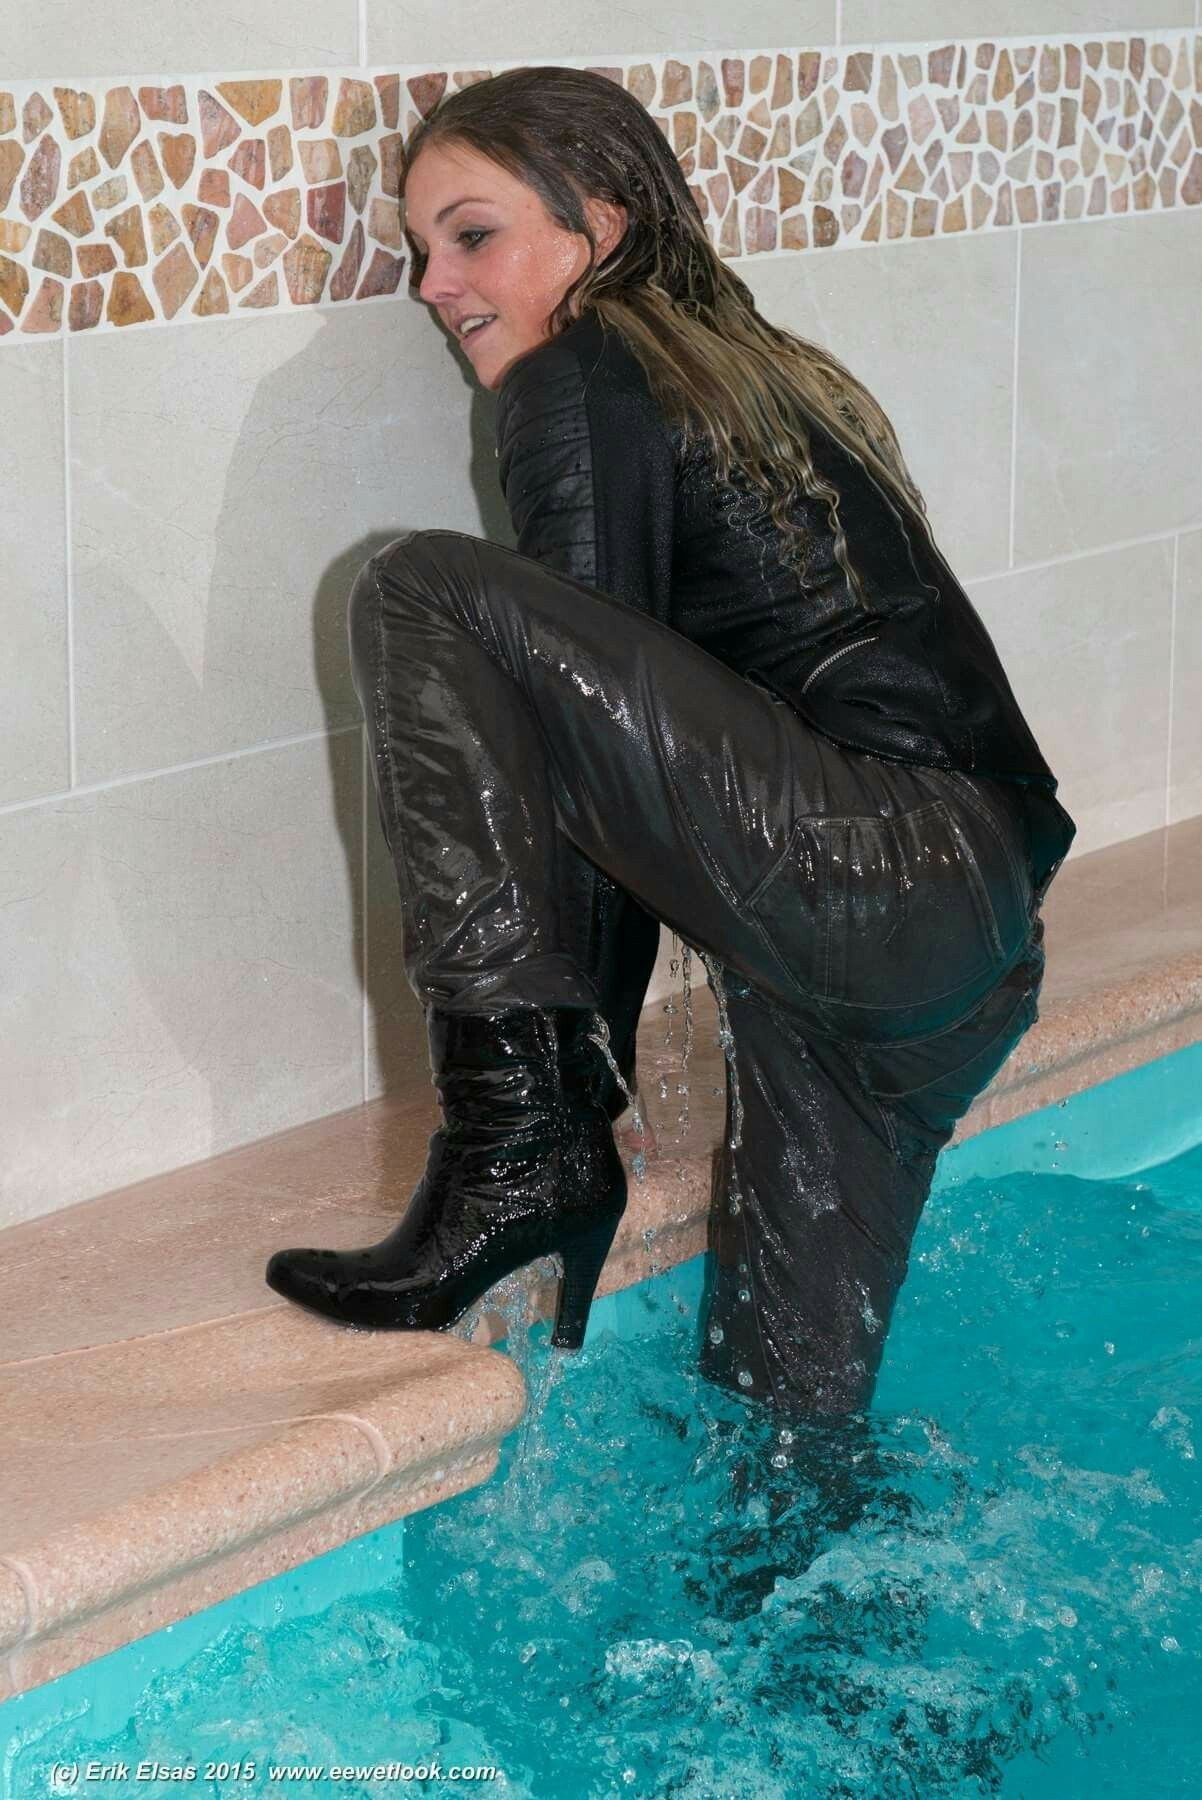 436f232cdb9 Pin by jeremy ebert on pool heels in 2019 | Leather pants, Sexy ...